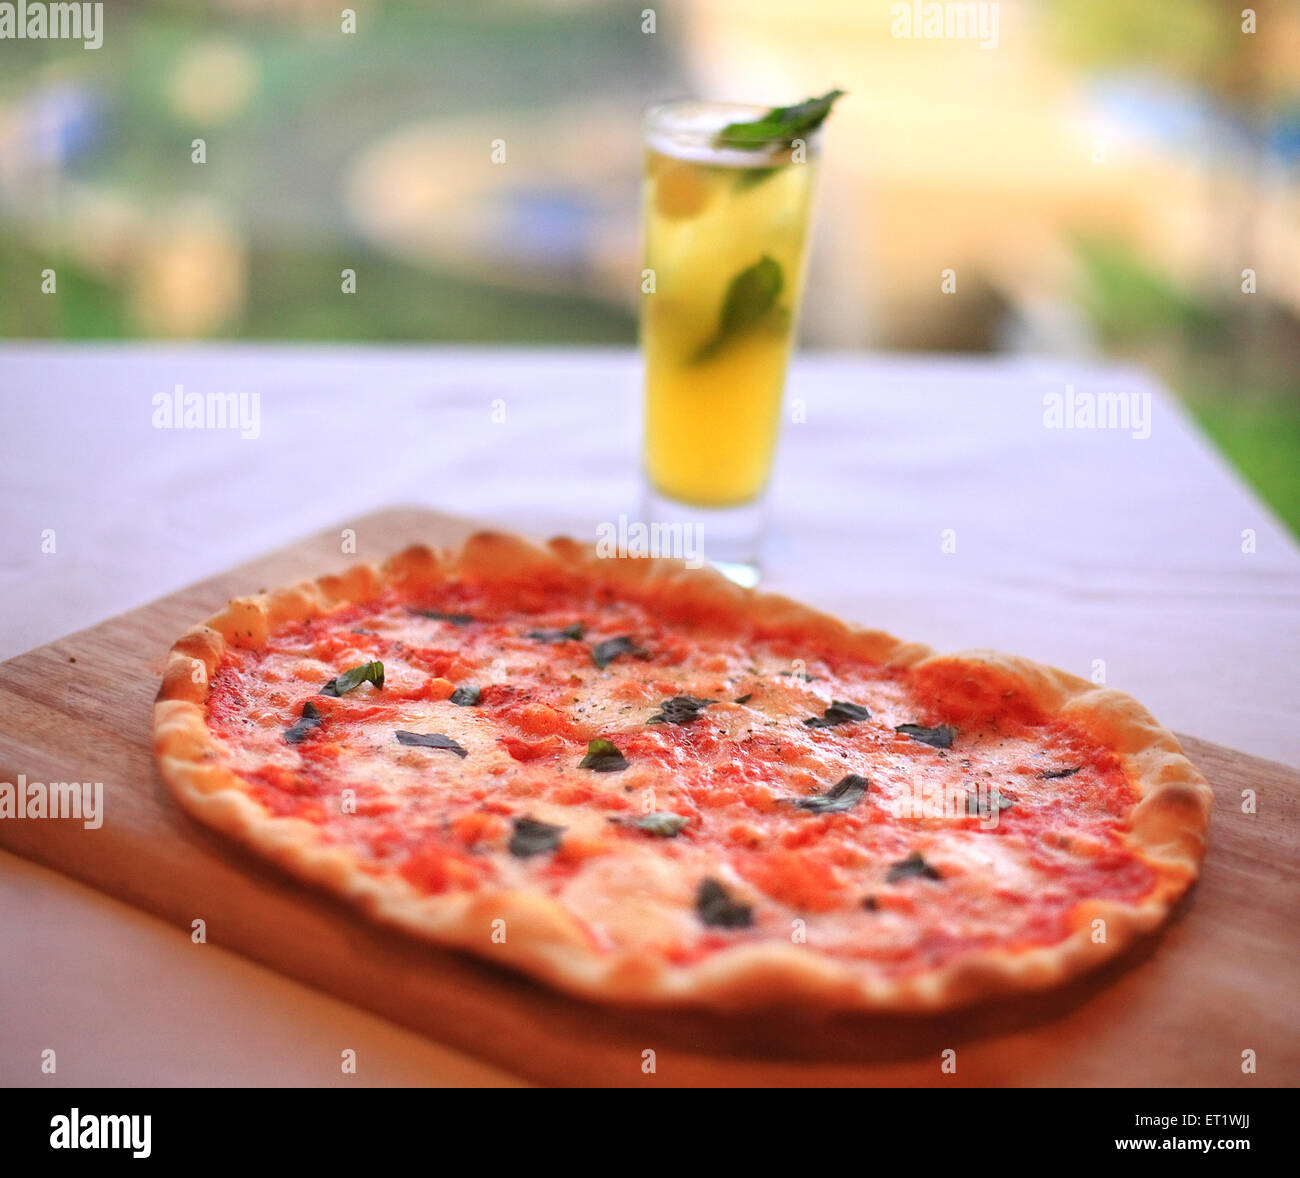 Gin based cool drink in glass with pizza on dining table in hotel ; Bombay Mumbai ; Maharashtra ; India - Stock Image